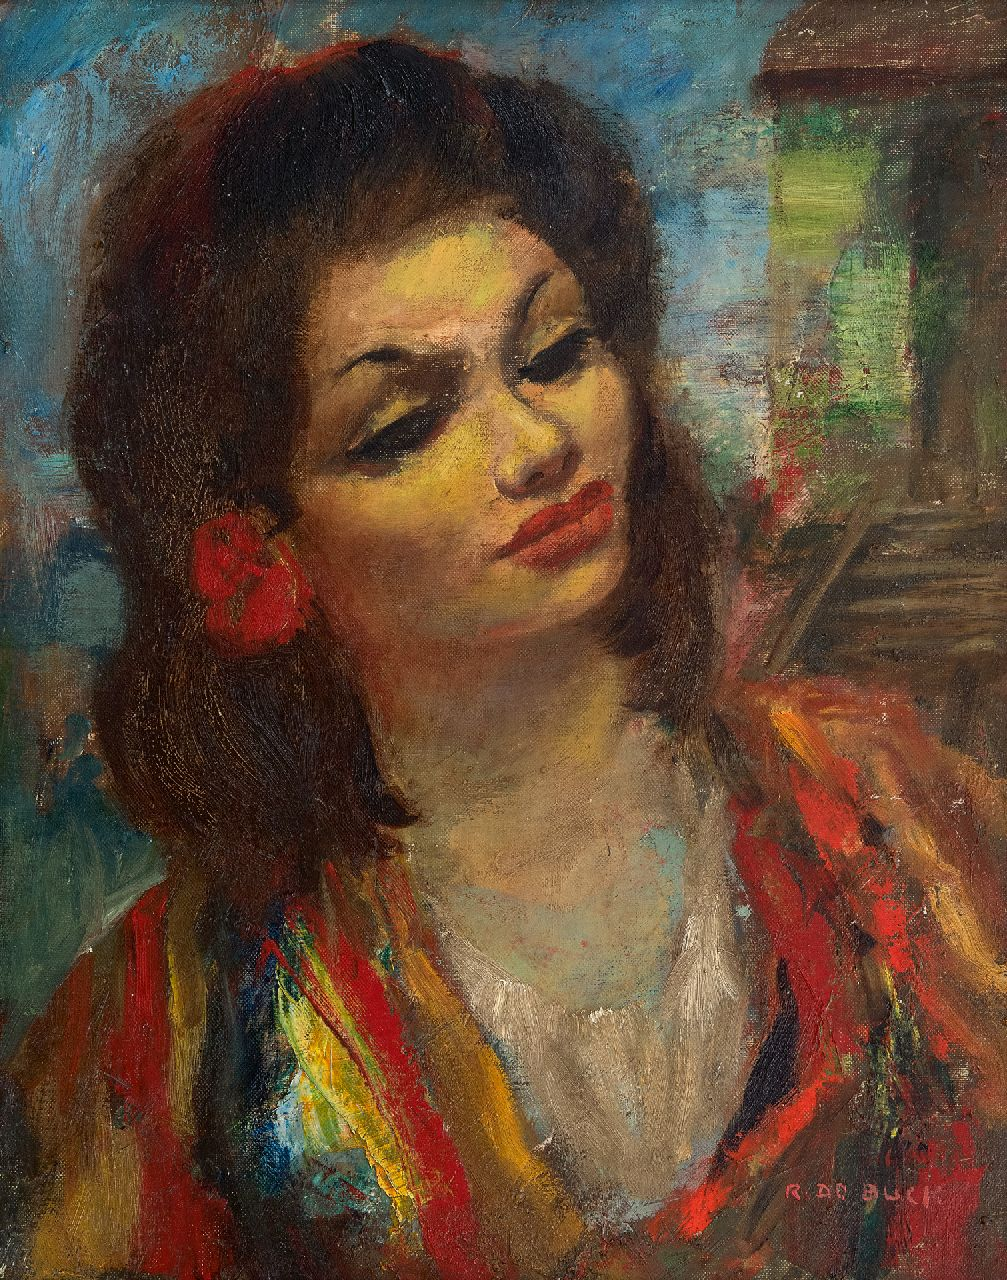 Buck R. de | Raphaël de Buck | Paintings offered for sale | Gipsy dancer, oil on canvas 50.4 x 40.5 cm, signed l.r.